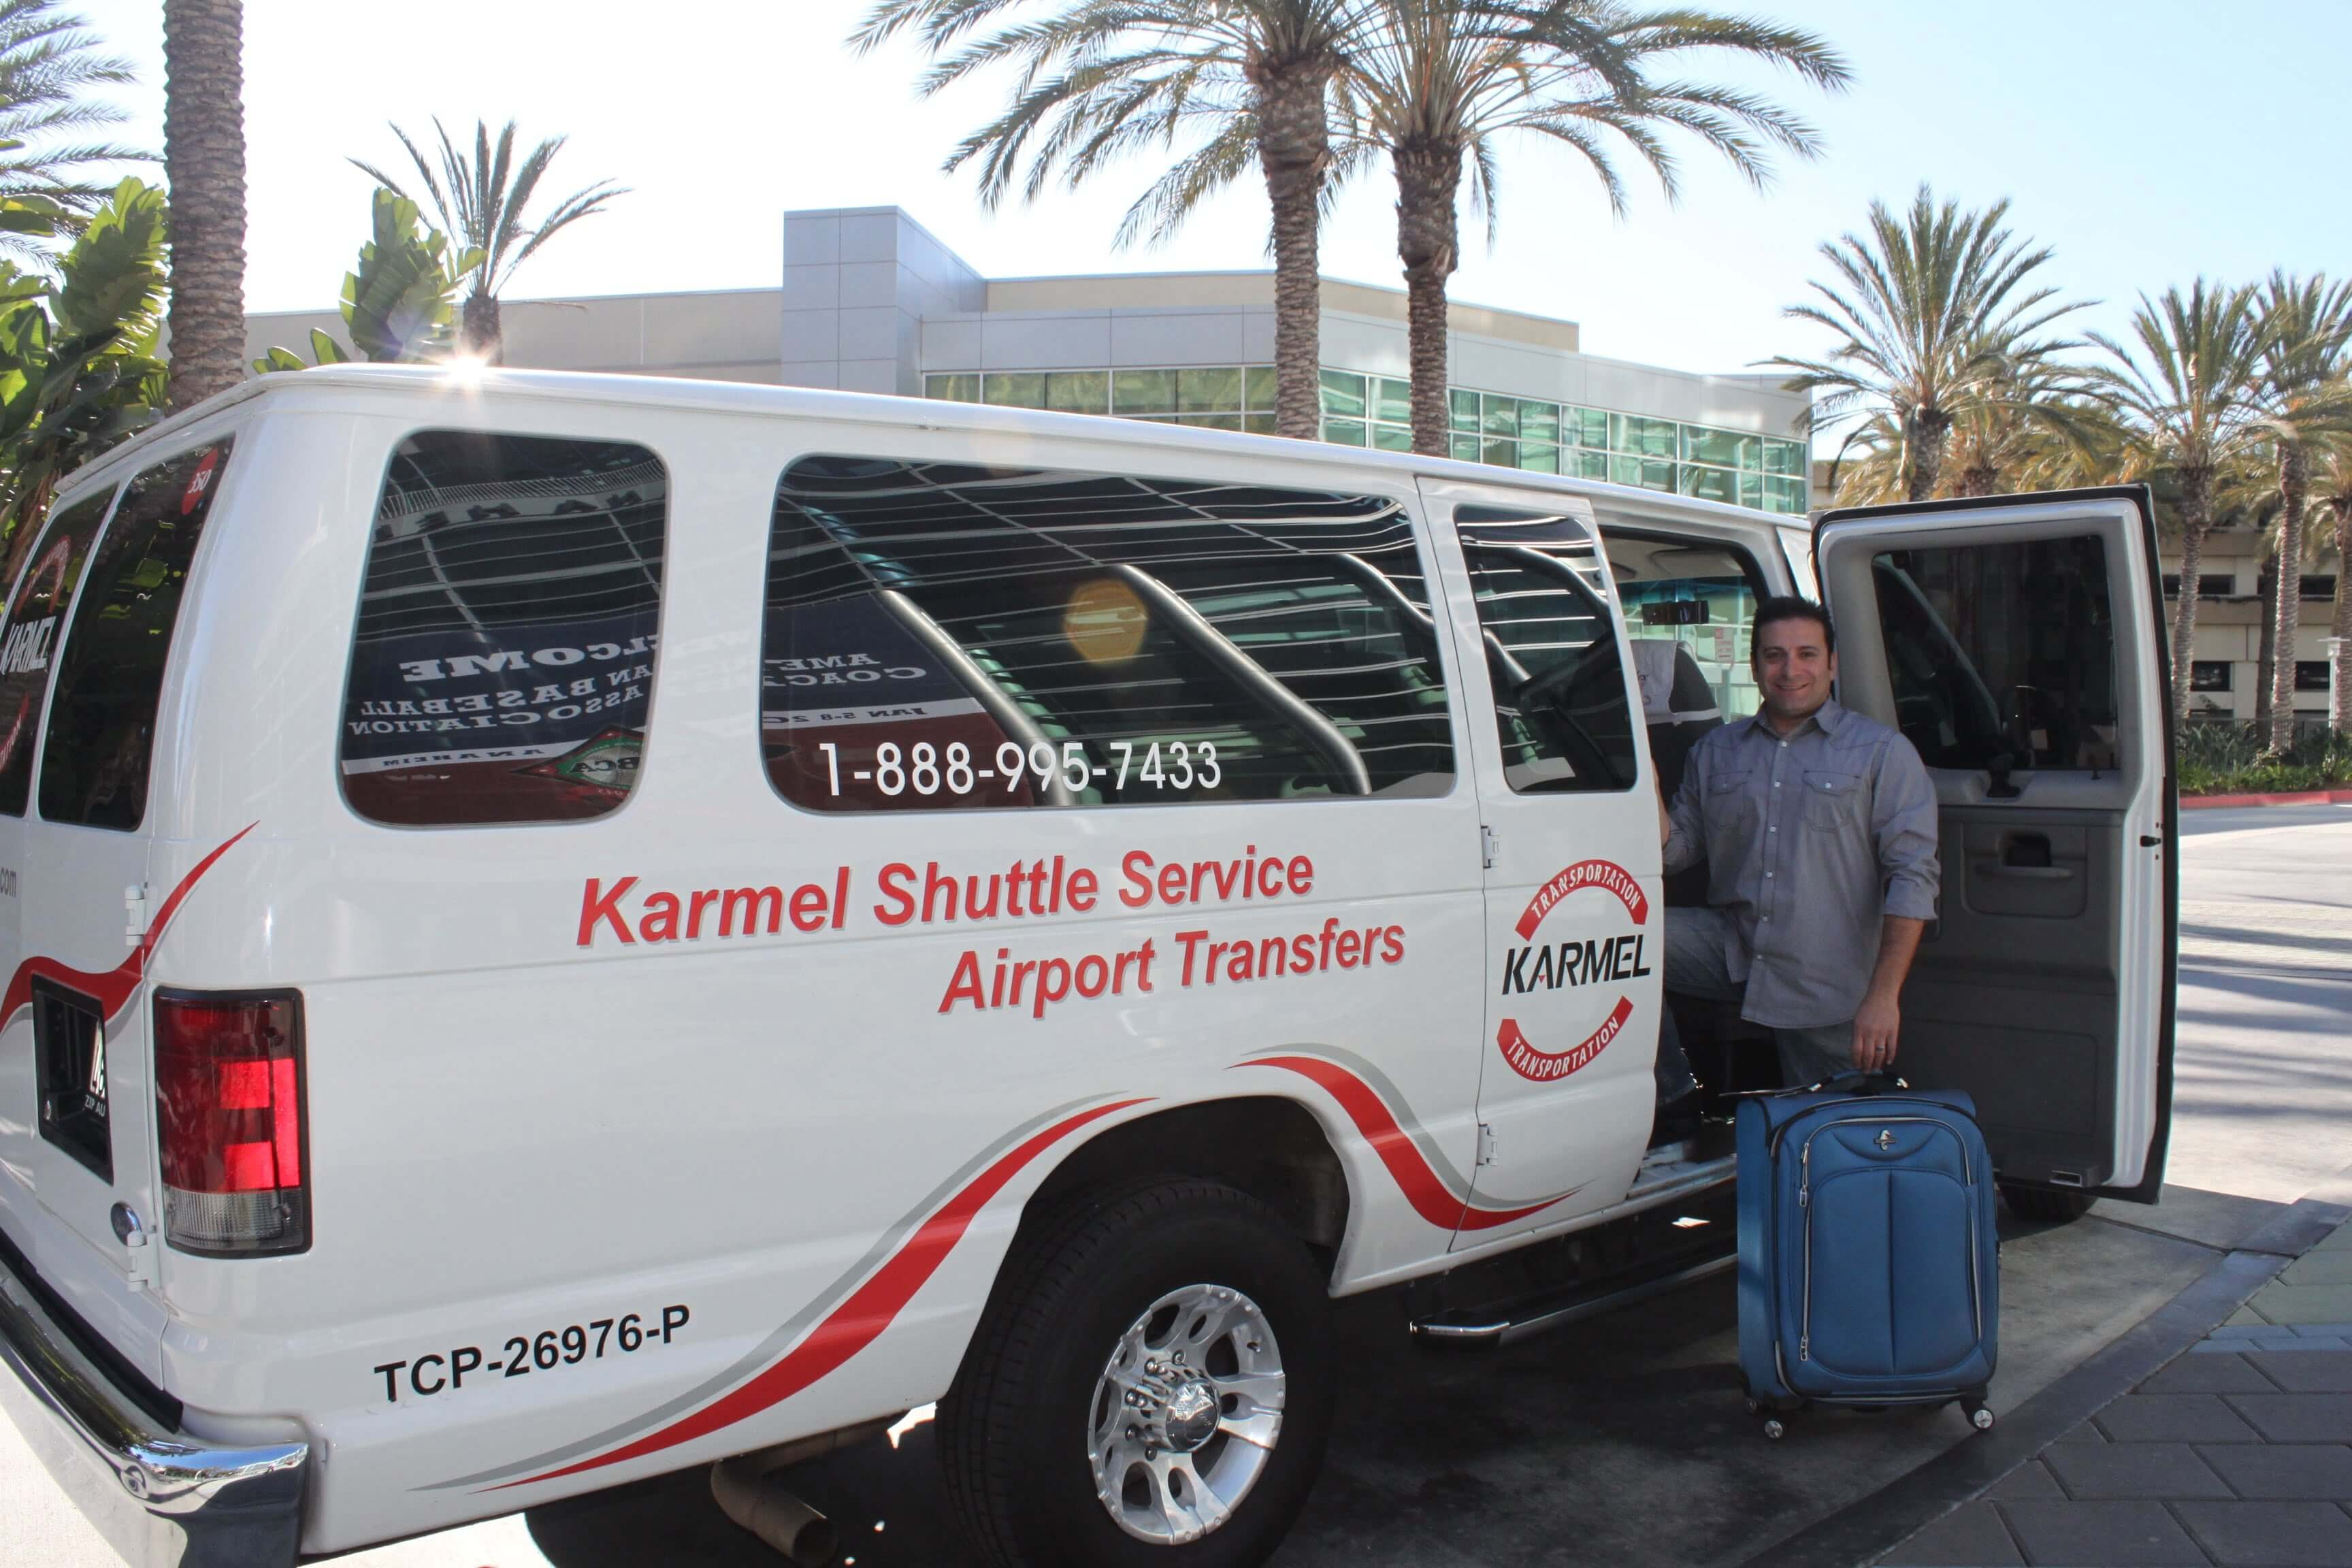 Mike Afram standing in front of Karmel Shuttle van